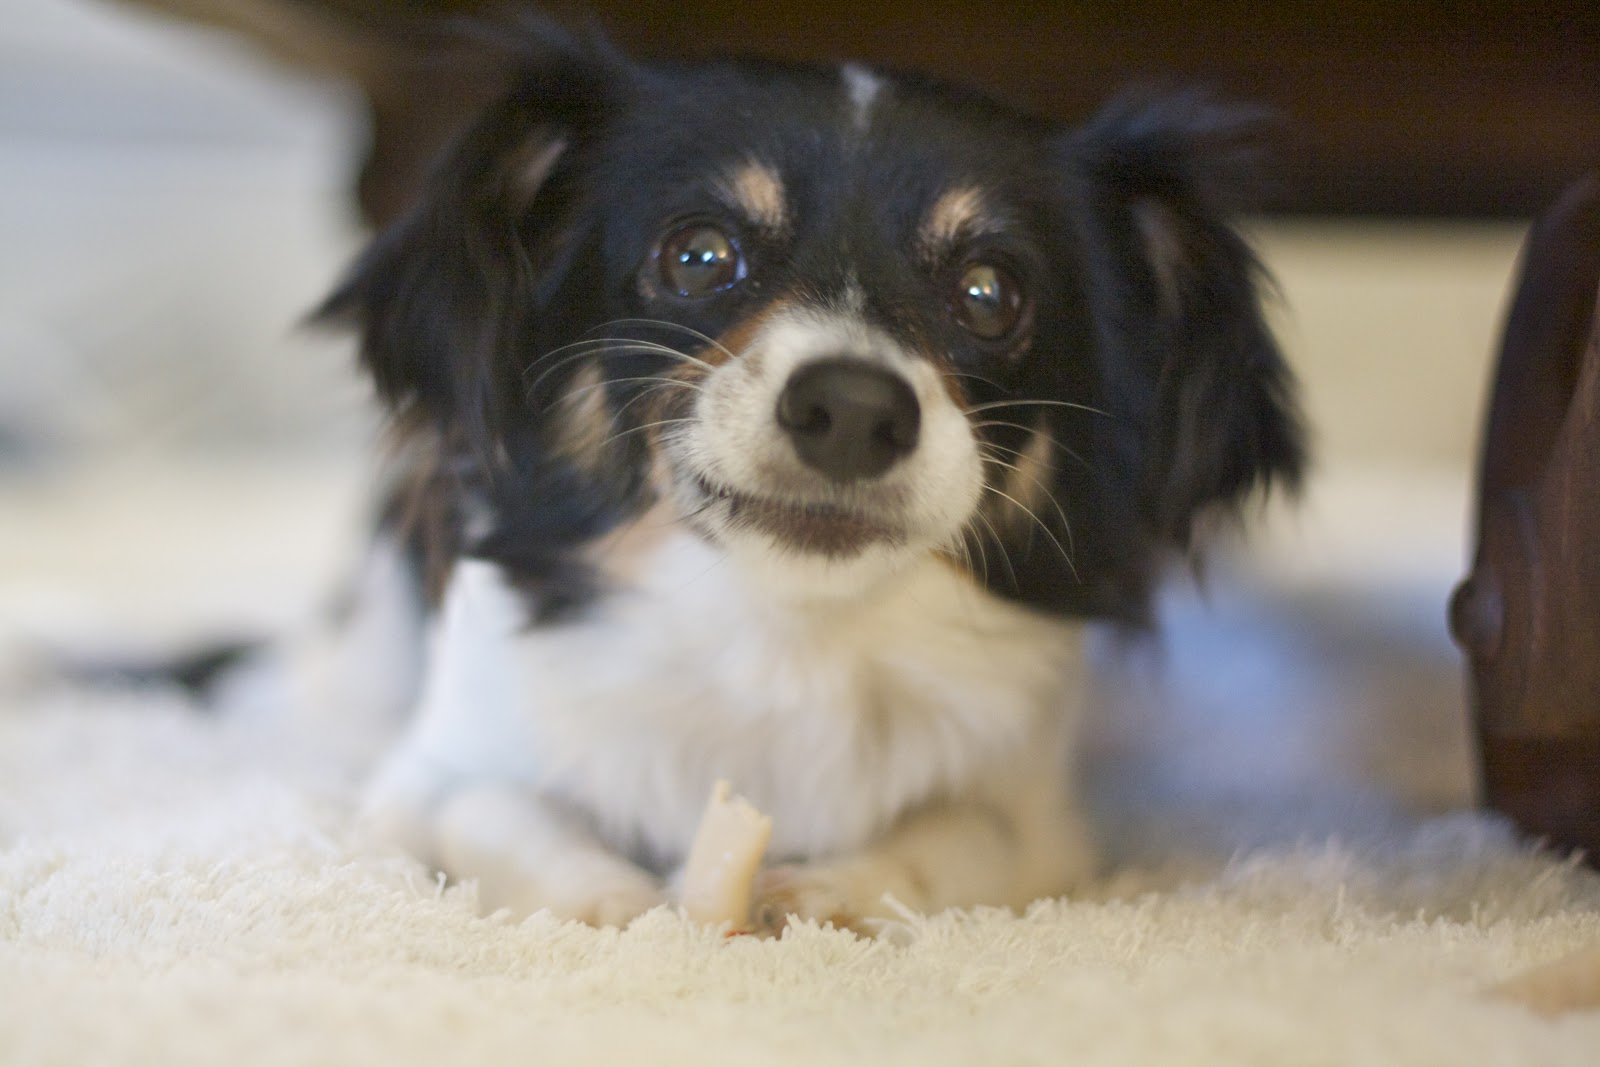 Papillon Dachshund Mix From the dachshund rescue